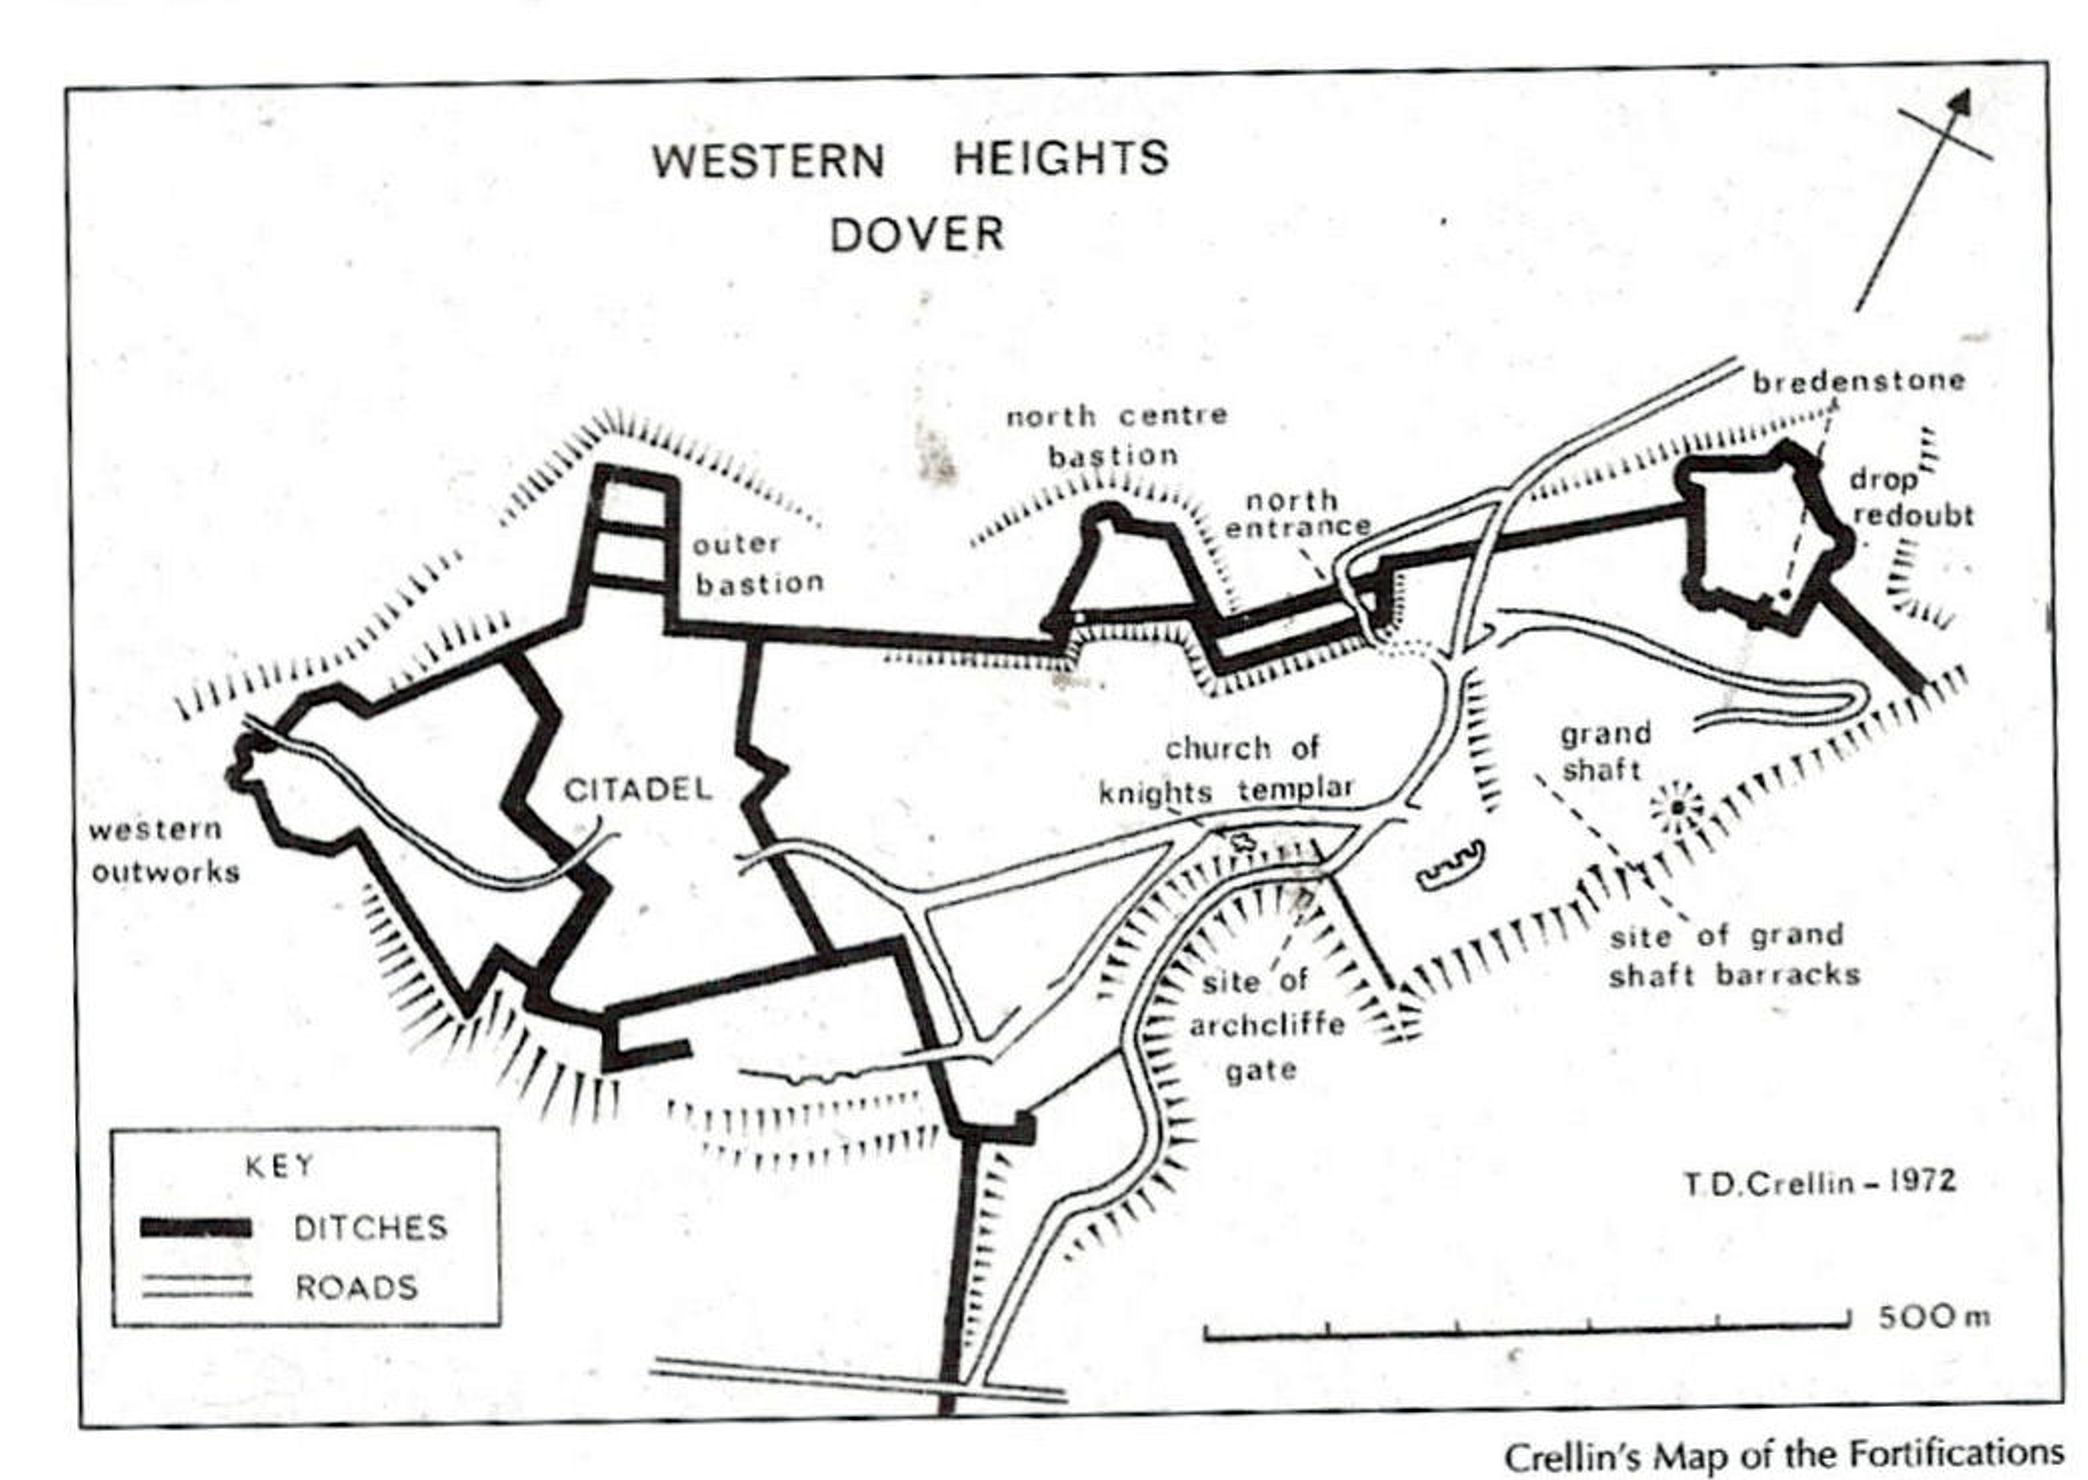 - th-doug-crellins-map-of-the-western-heights-fortifications